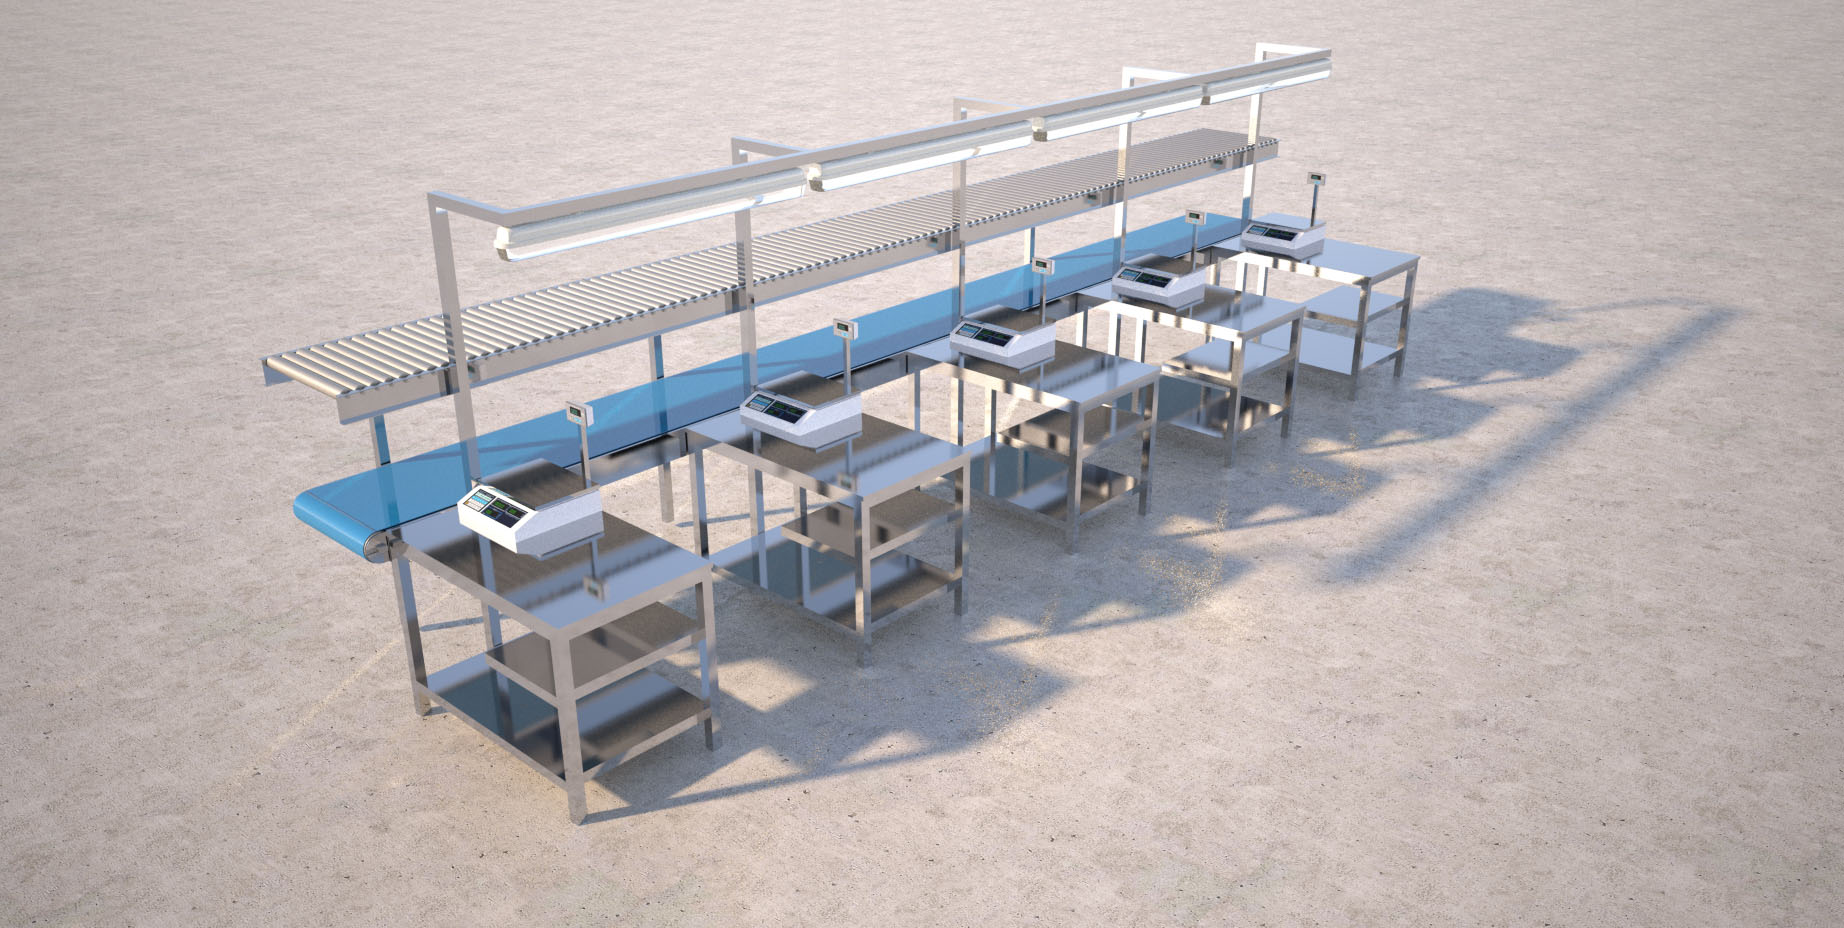 stainless-steel-station-with-tables-jpeg